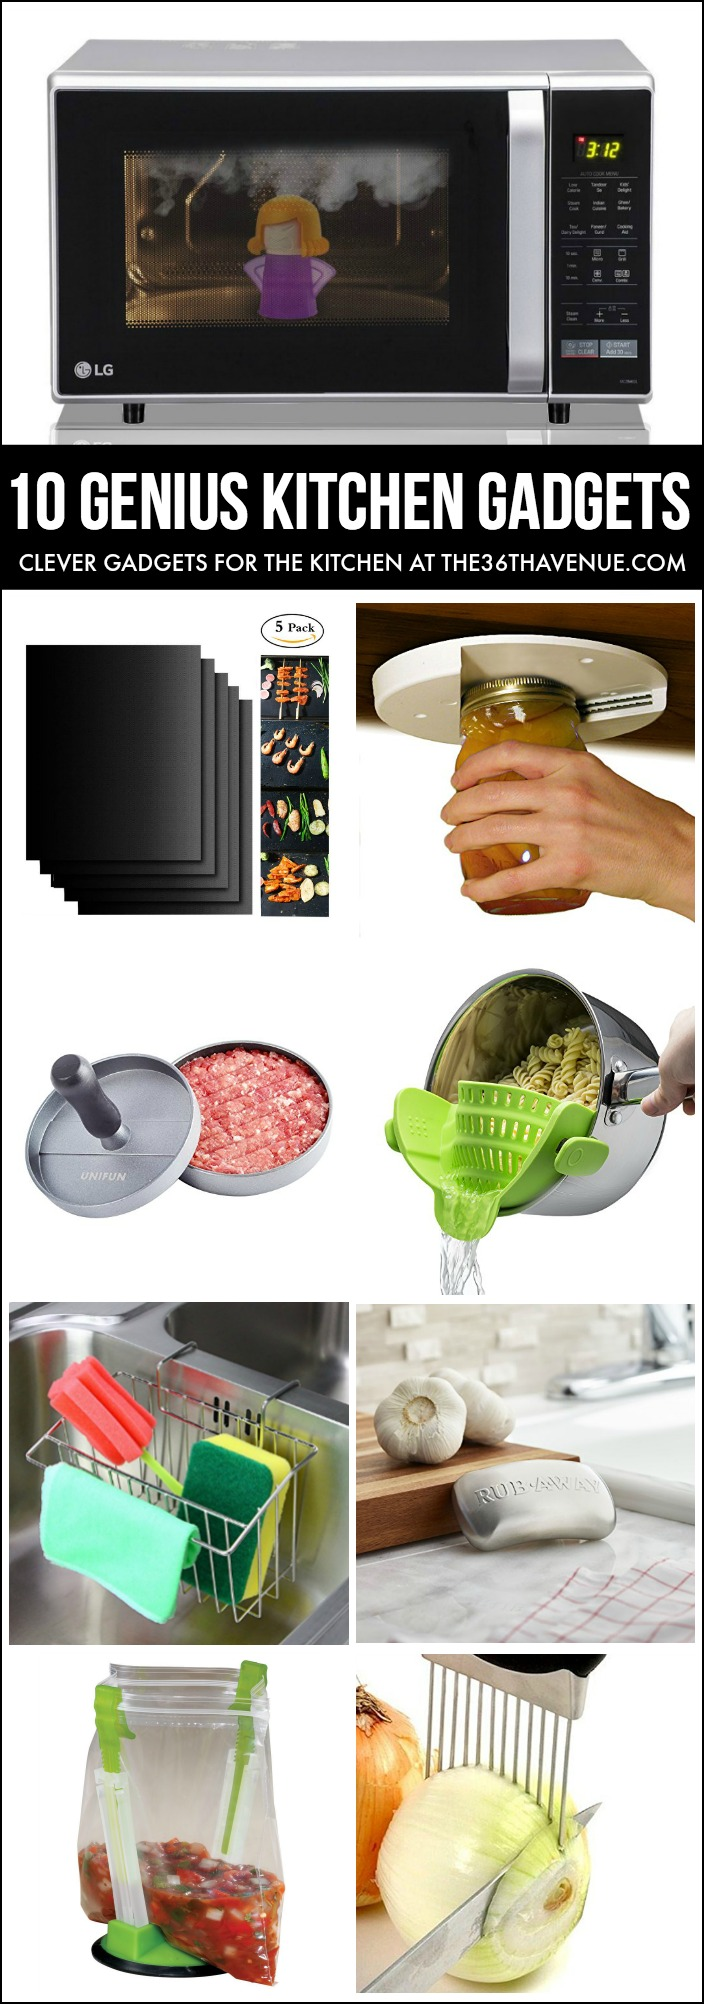 Clever Kitchen Gadgets that every kitchen should have. Kitchen organization and cleaning ideas.